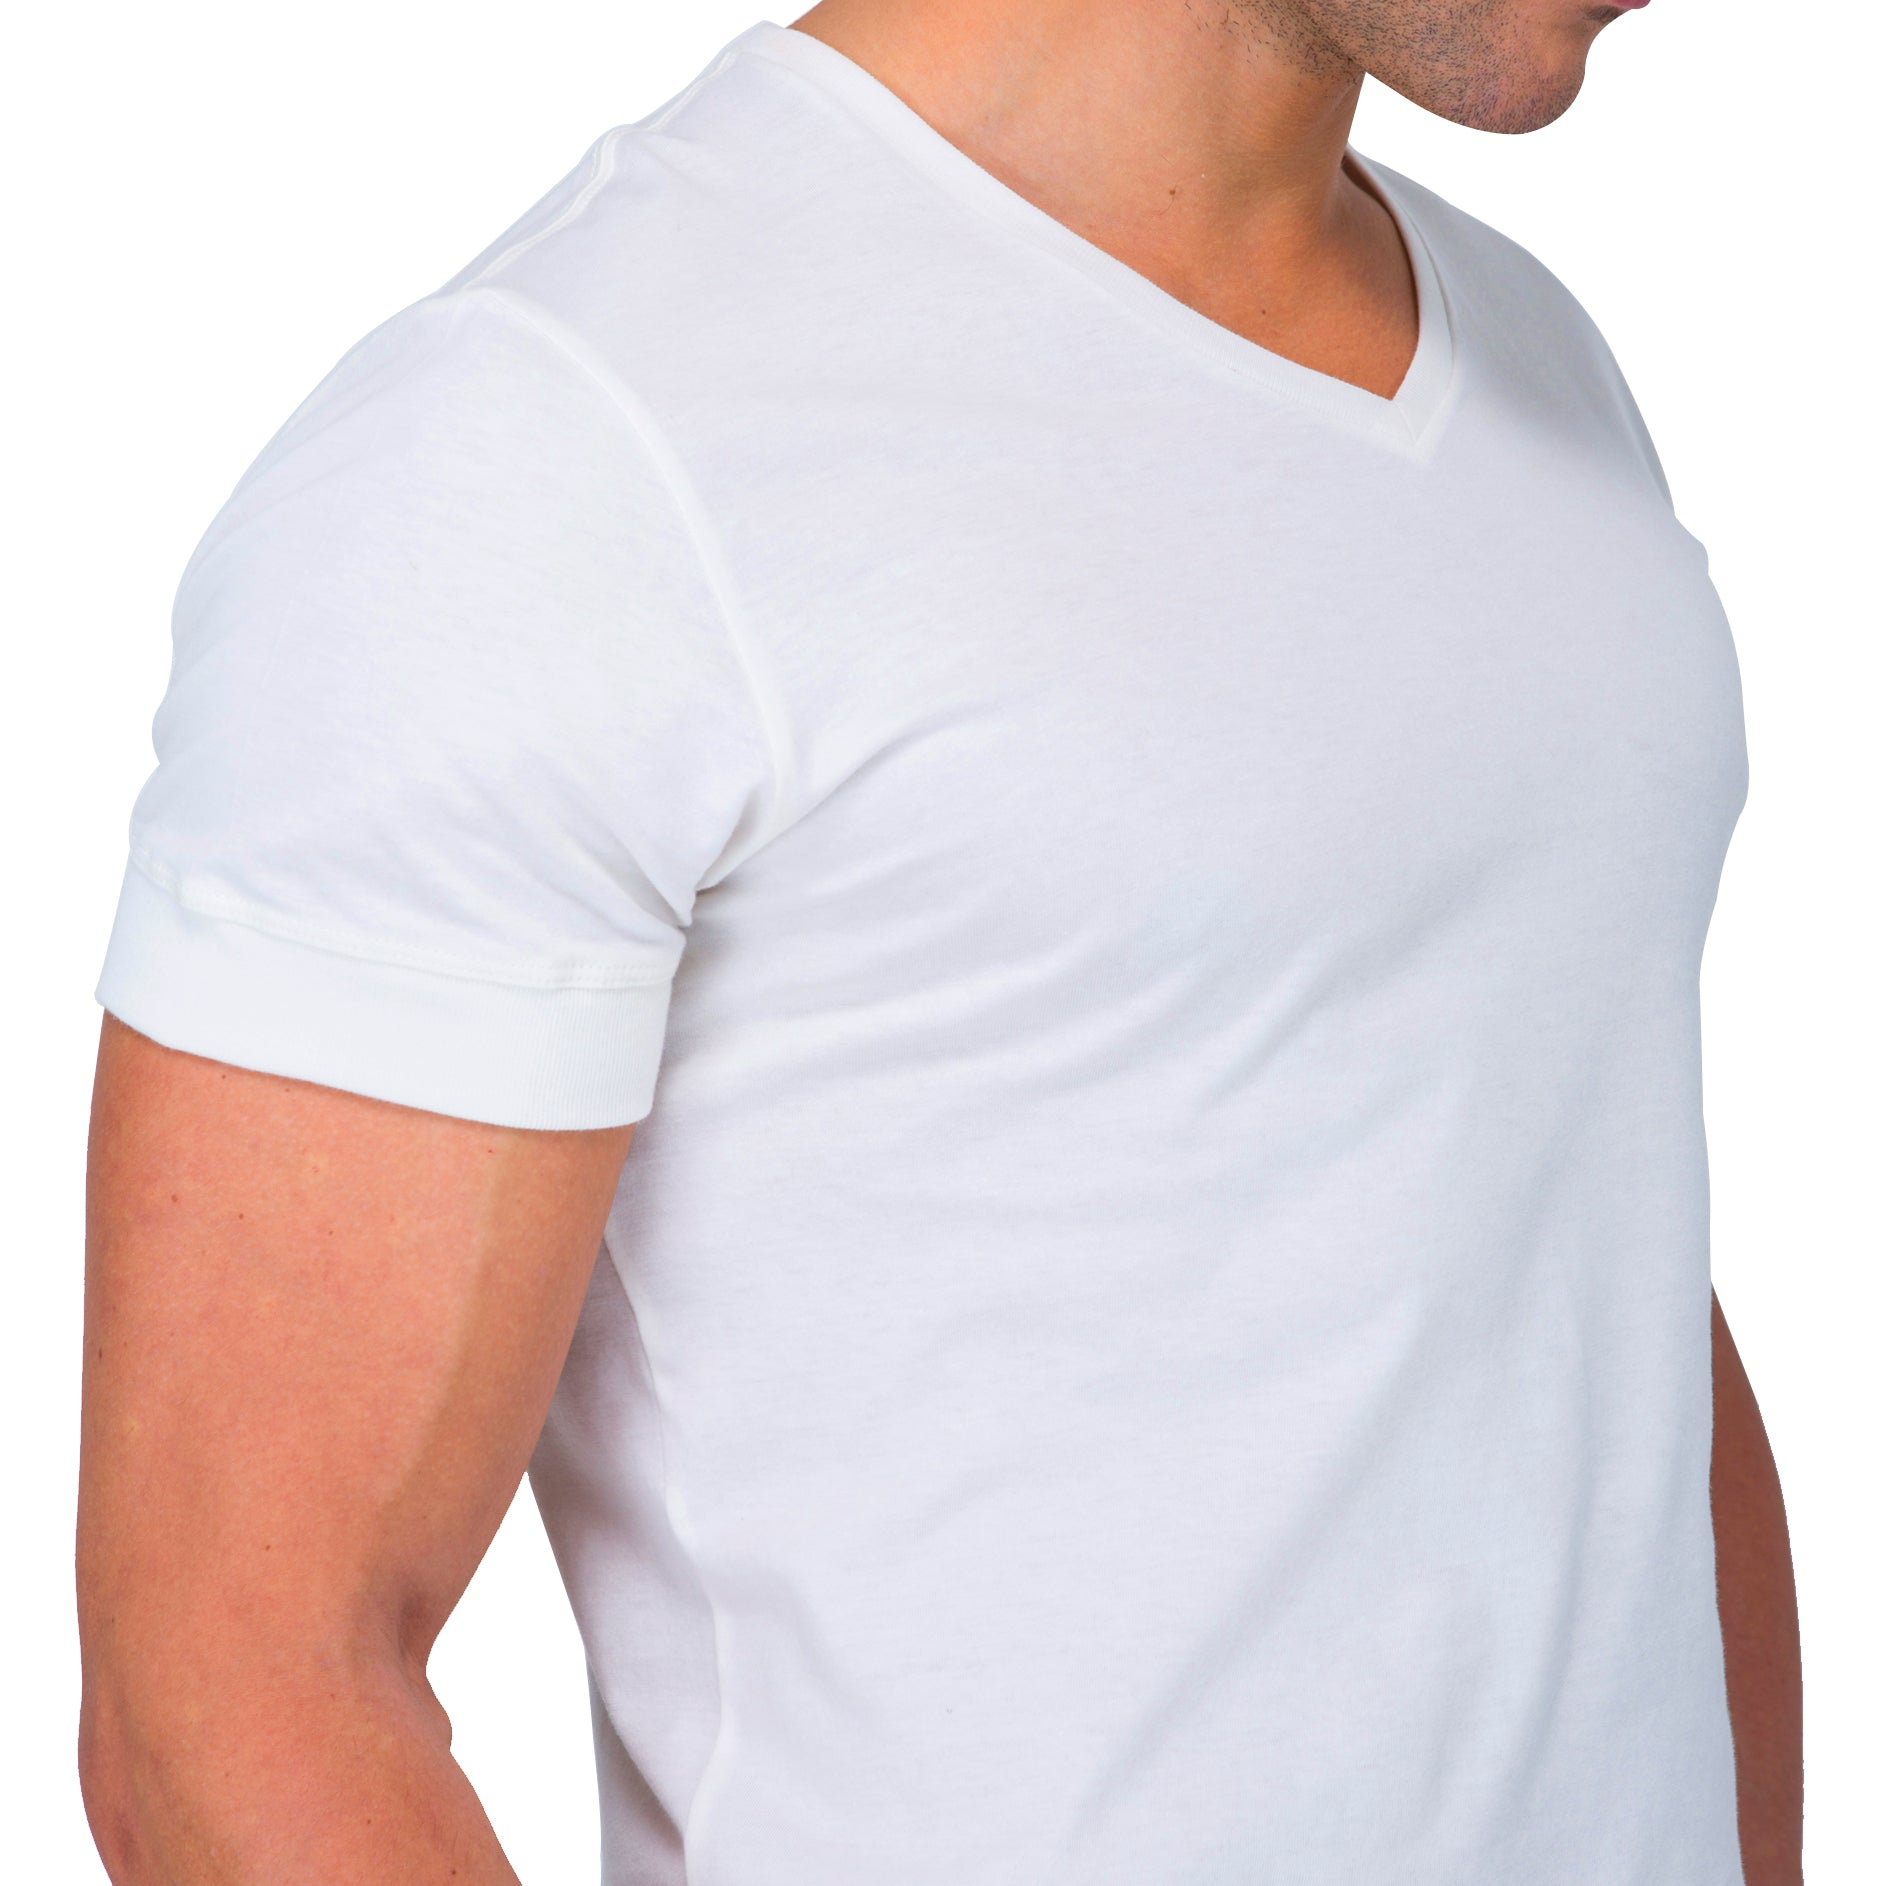 Athletic V-Neck shirts